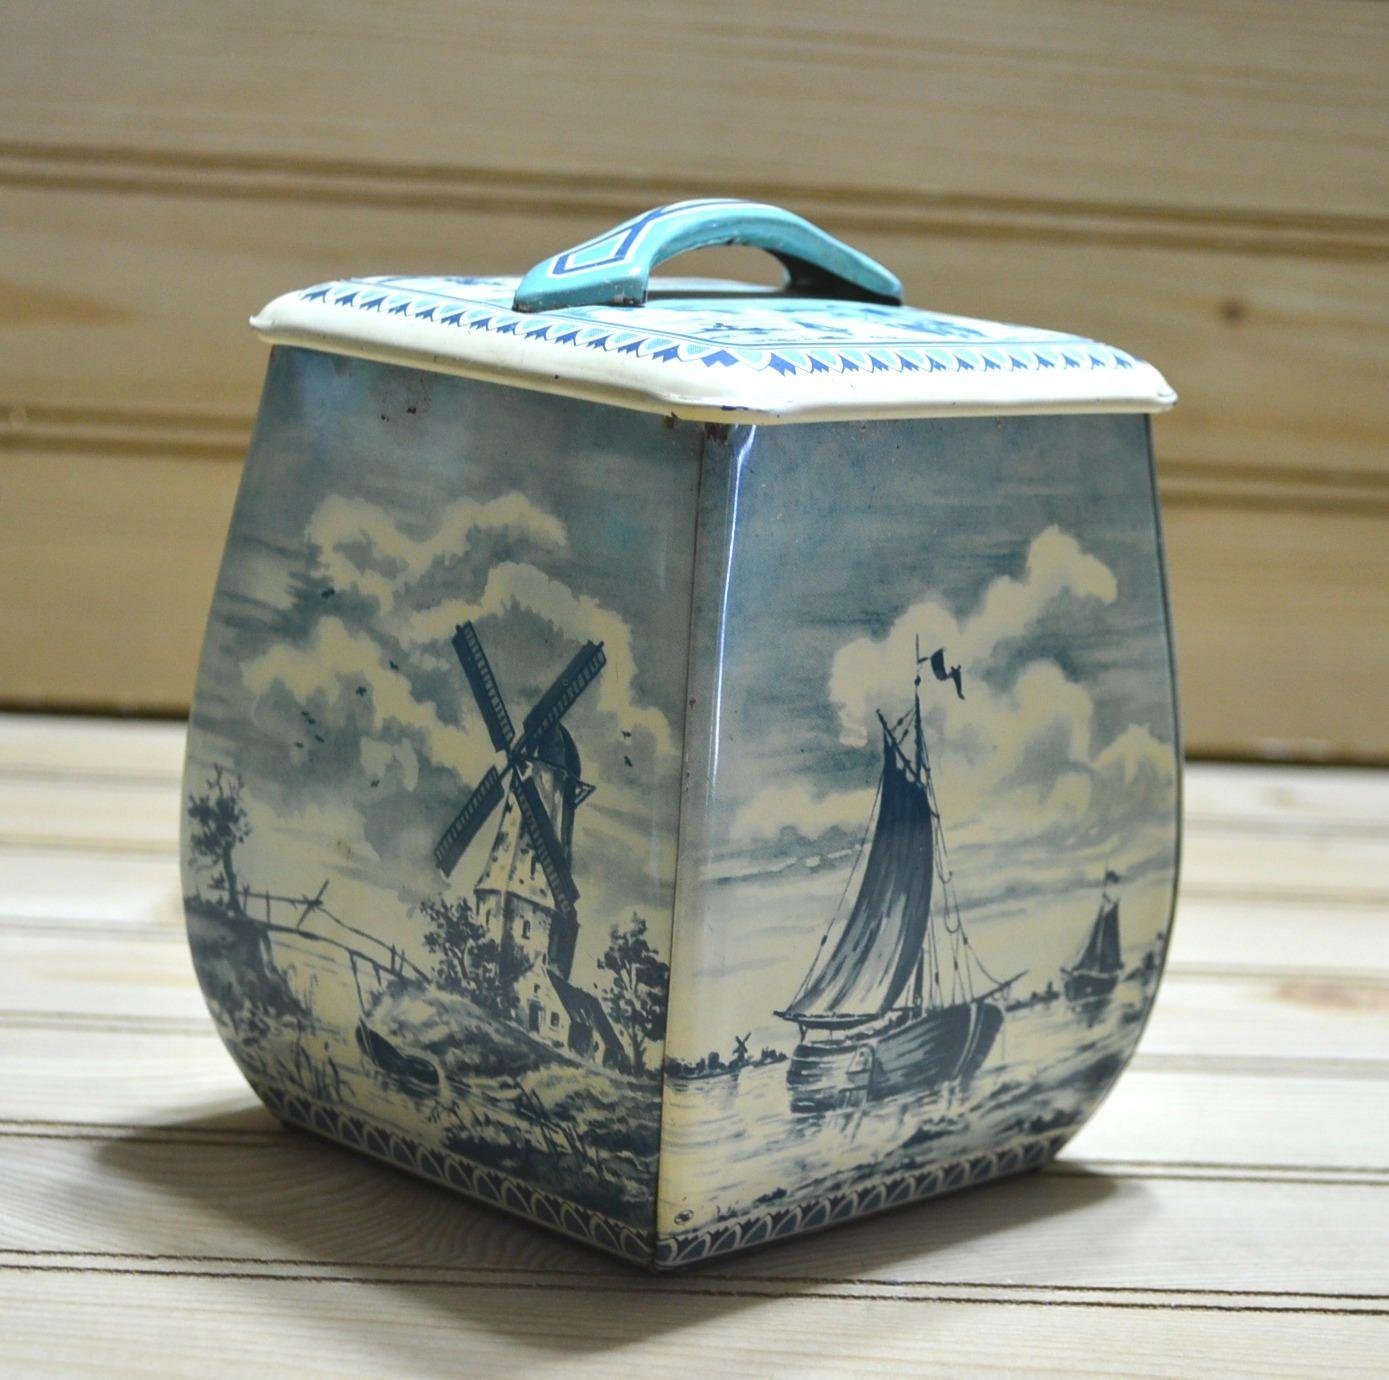 Decorative Cookie Containers Vintage Blue And Ivory Biscuit Tin Container Tea Spices